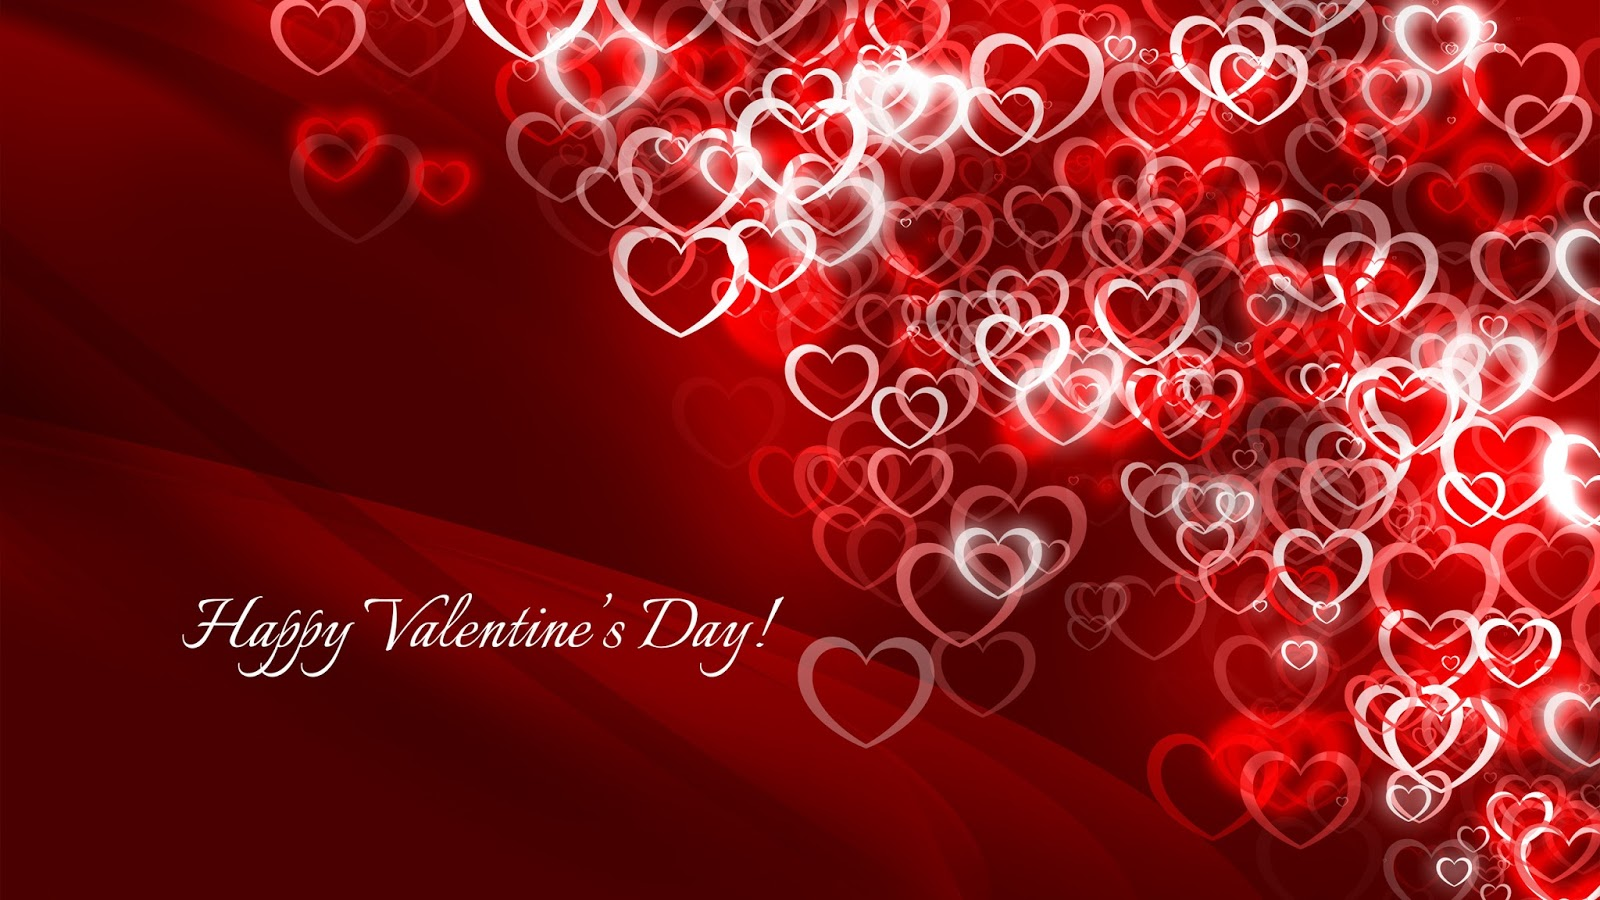 Love Quotes For Valentines Day Cards Happy Valentines Day 2017 Greetings Wishes Ideas  Happy New Year 2017